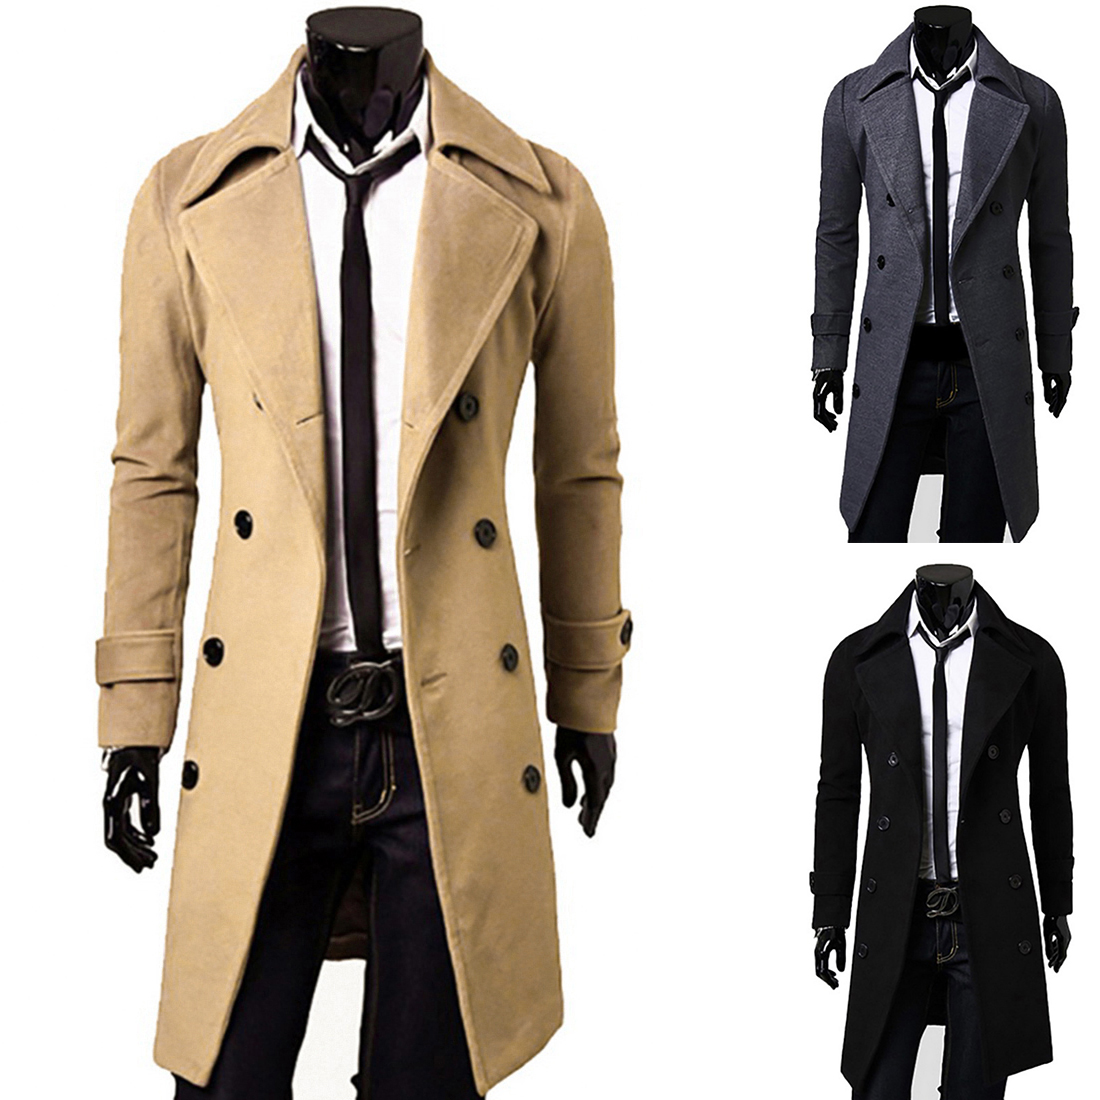 MJARTORIA 2020 Trench Coat Mens Classic Double Breasted Mens Long Coat Masculino Clothing Long Jackets Coats British Overcoat